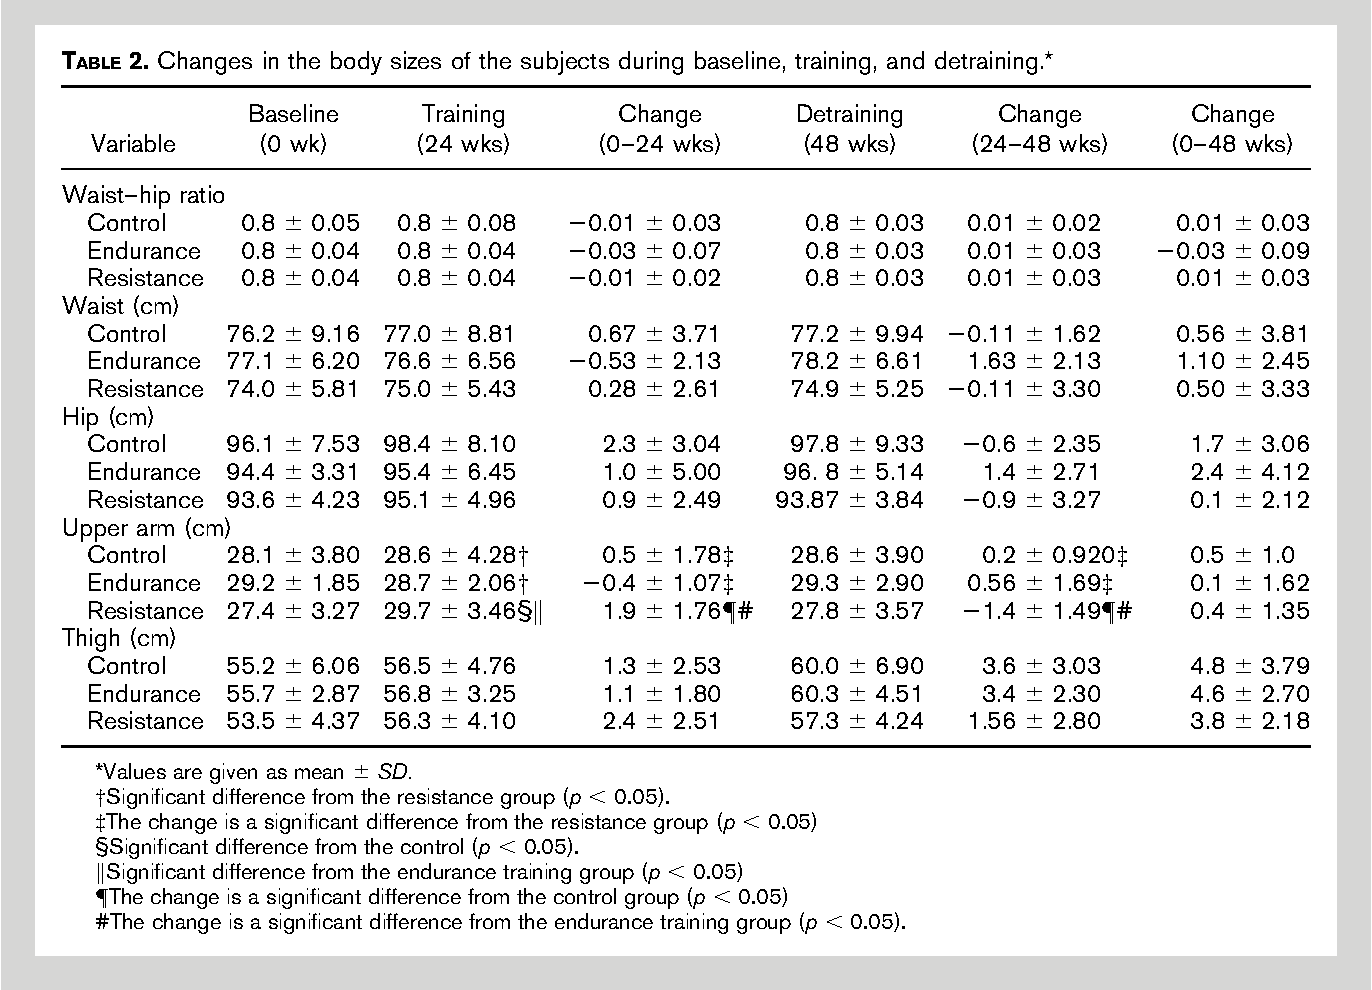 Pdf Training And Detraining Effects Of The Resistance Vs Endurance Program On Body Composition Body Size And Physical Performance In Young Men Semantic Scholar